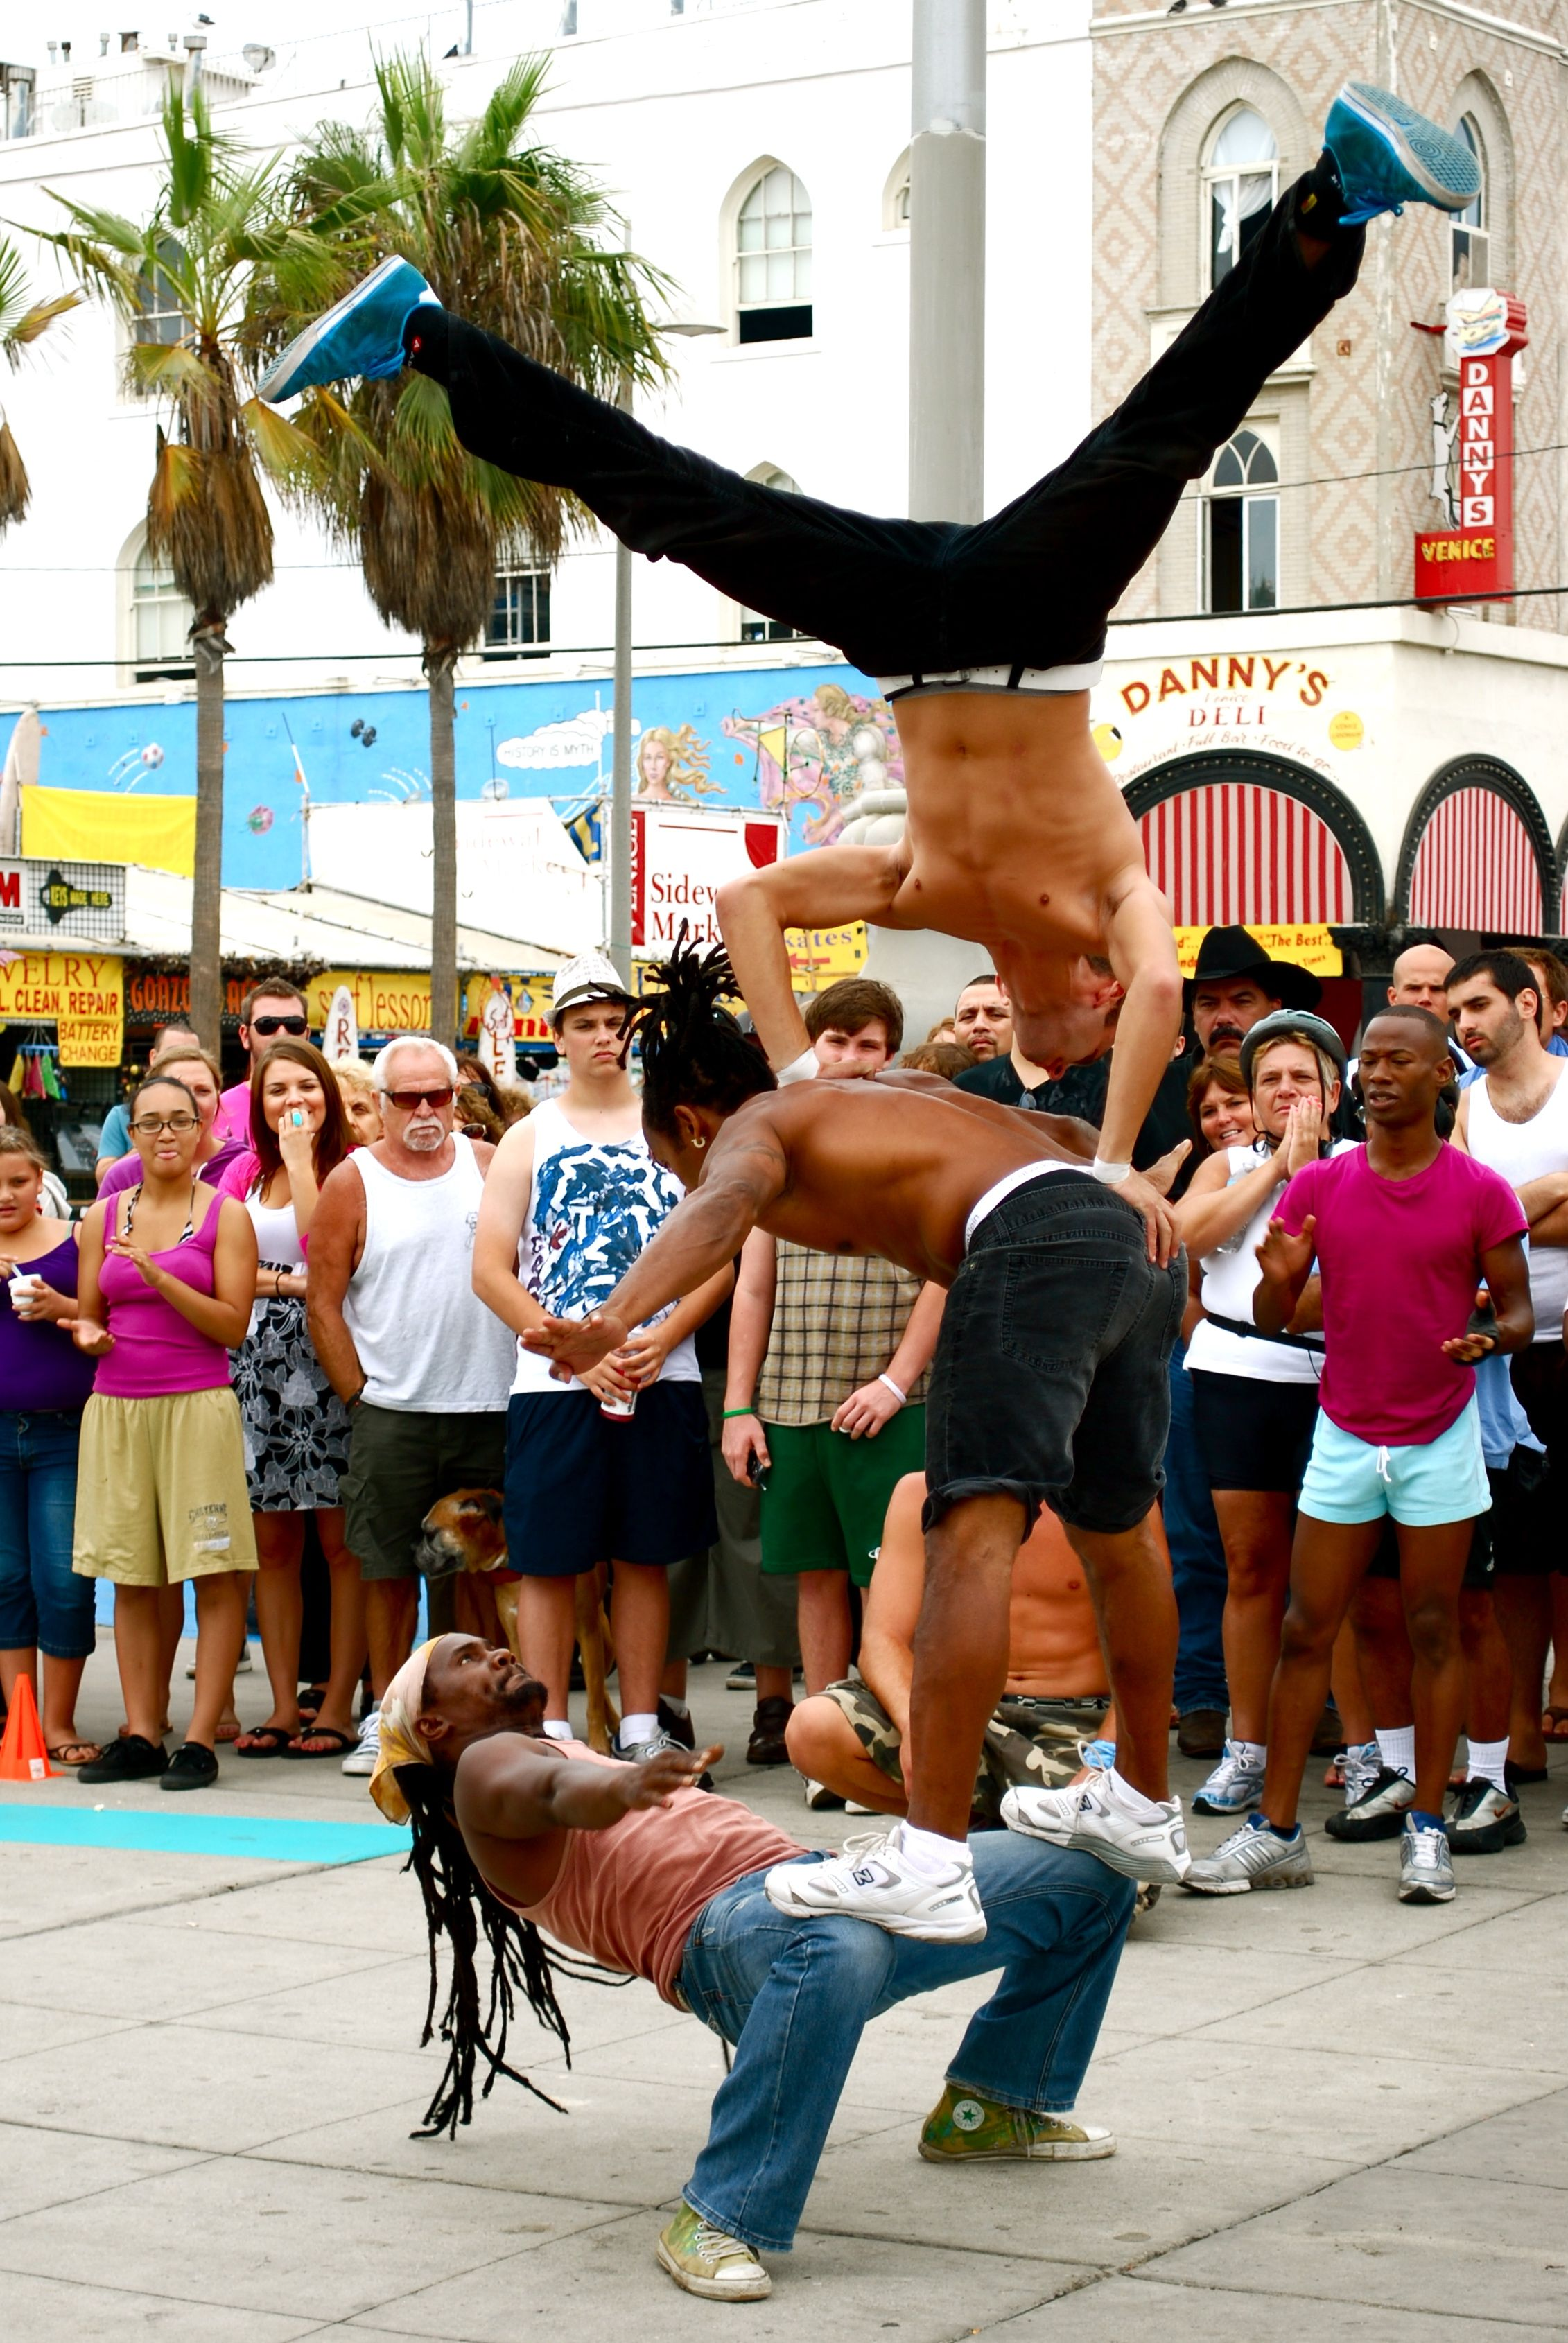 These Guys Were Pretty Awesome Raven And I Saw Them When We Visited Before The Move Street Performers Venice California